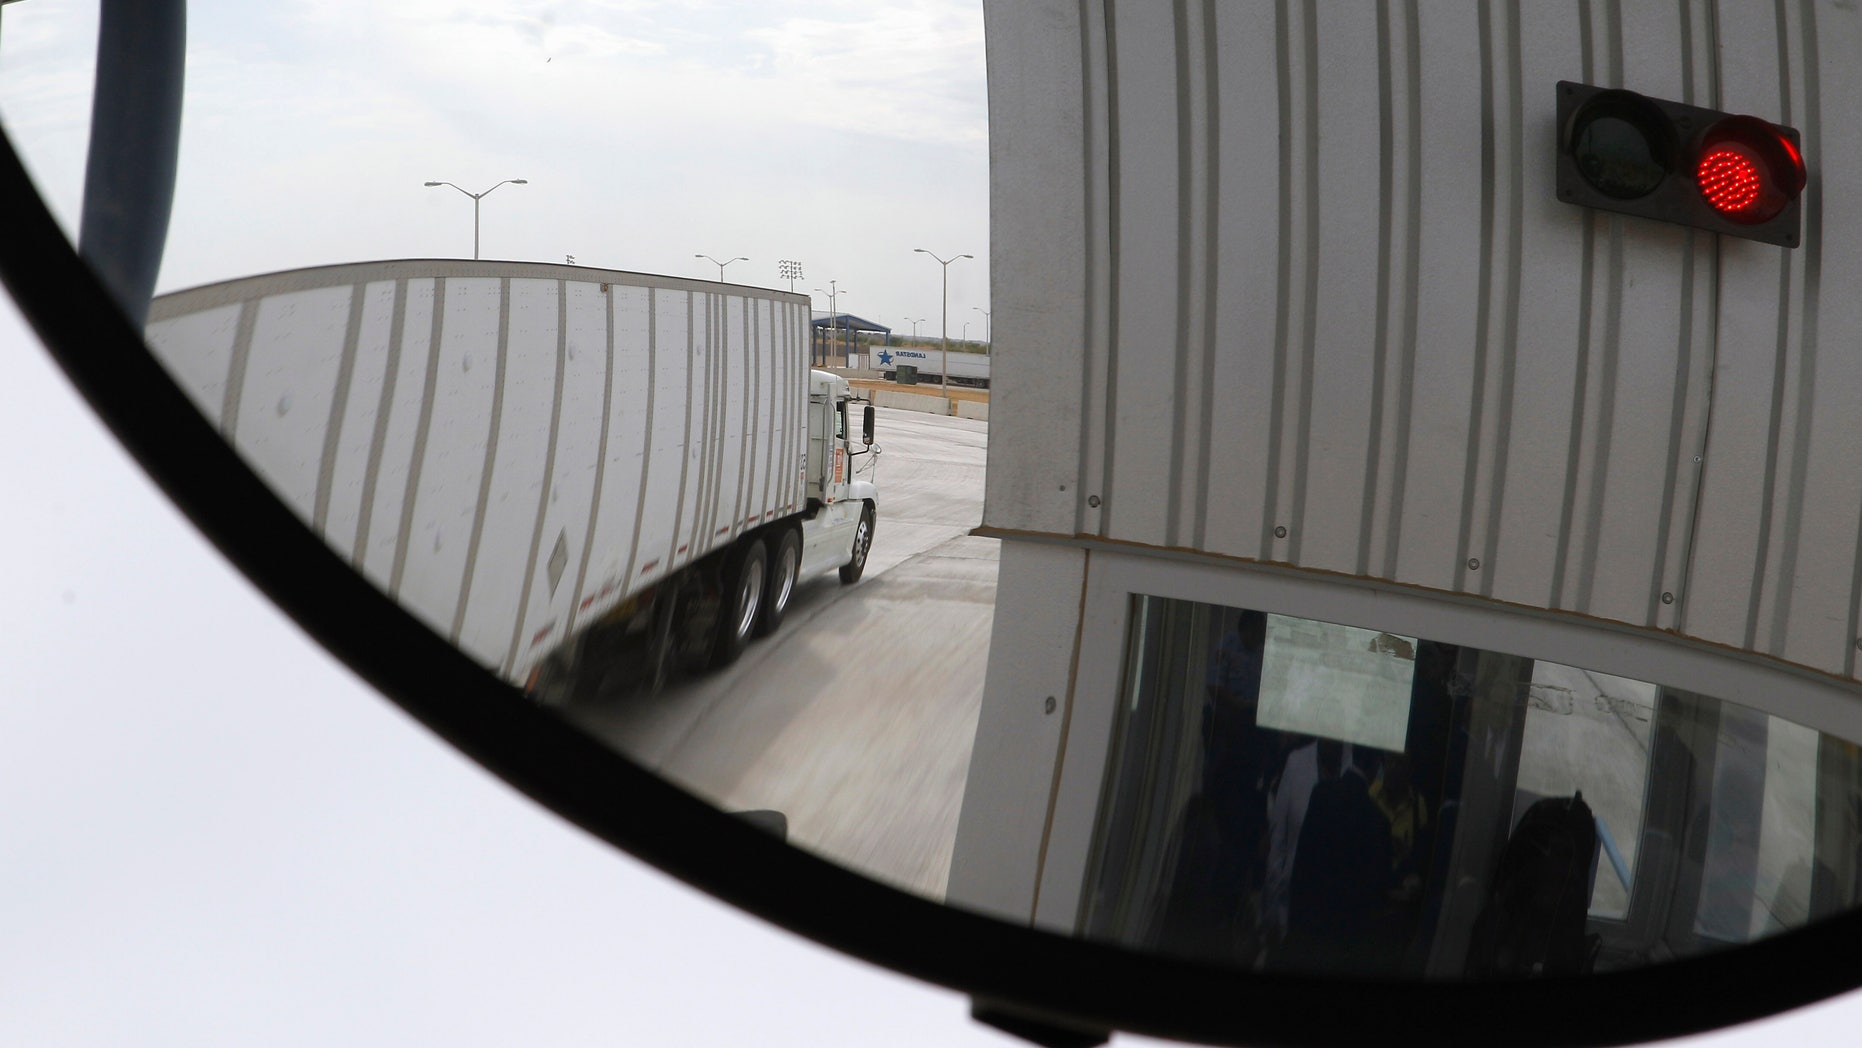 In this May 6, 2011 file photo, a trucker, seen in a security mirror, passes through an inspection booth for commercial traffic heading north into the U.S. from Mexico at the World Trade Bridge in Laredo, Texas.